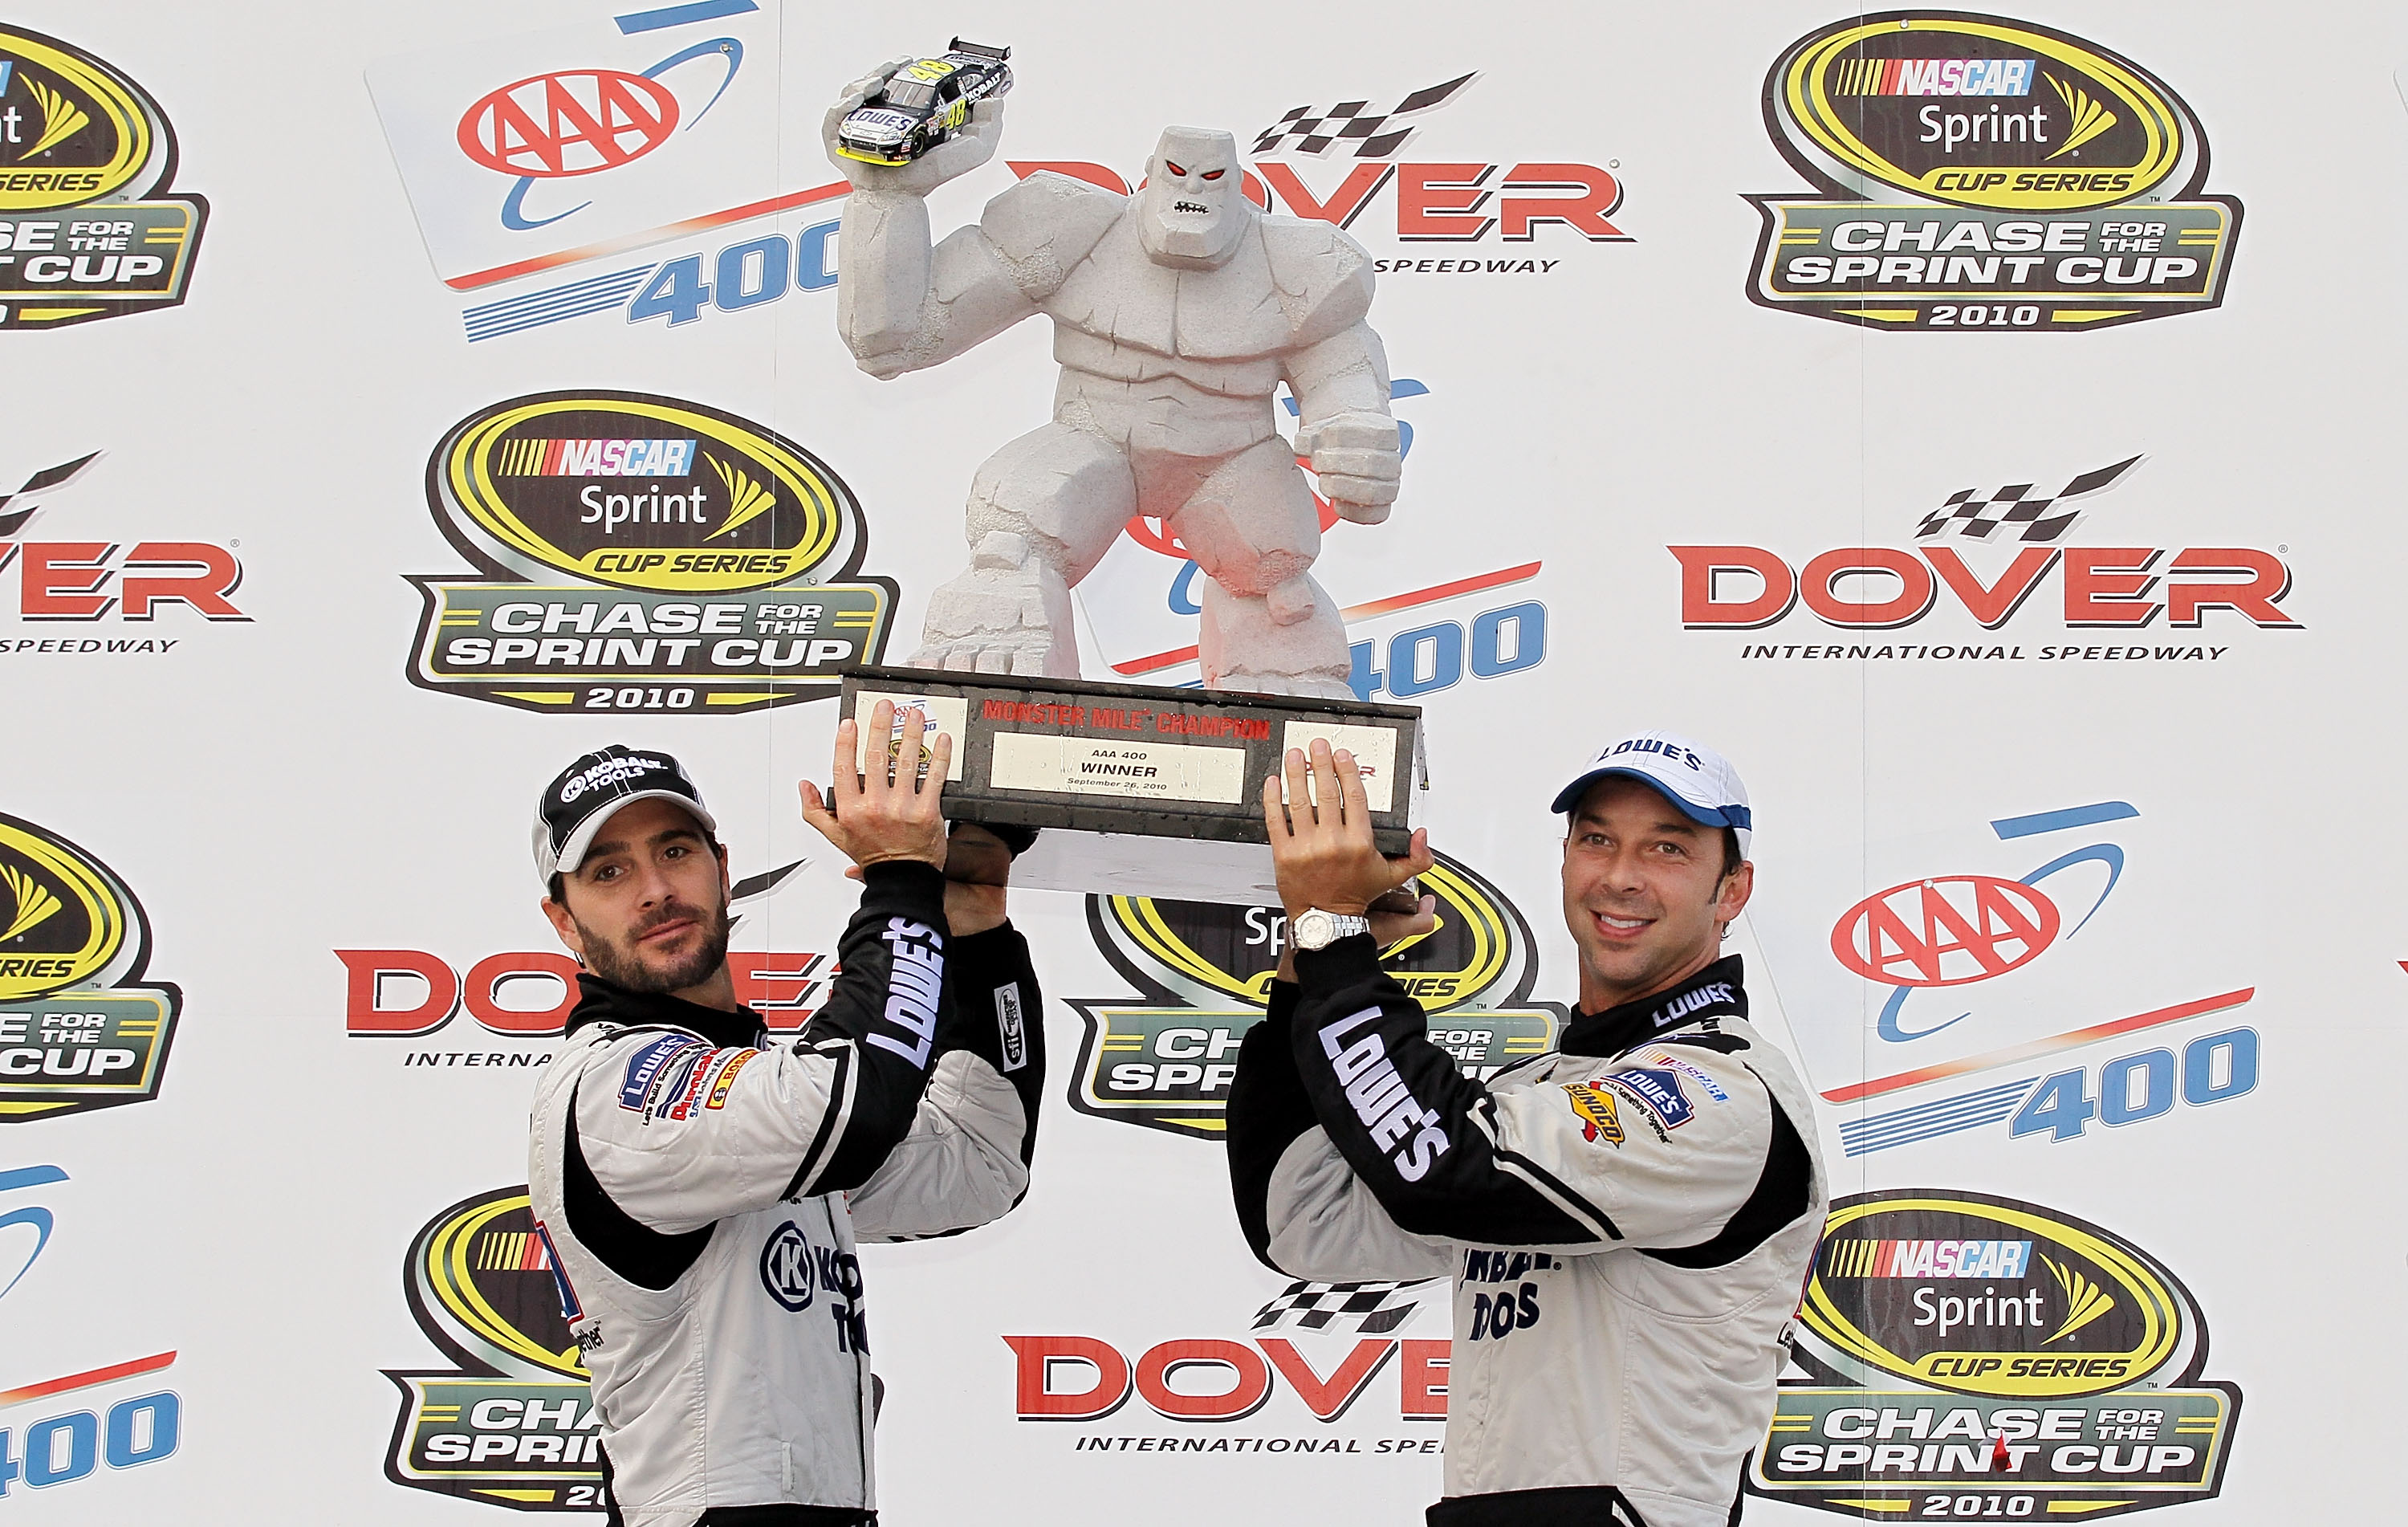 DOVER, DE - SEPTEMBER 26:  Jimmie Johnson (L), driver of the #48 Lowe's Chevrolet, and crew chief Chad Knaus celebrate in Victory Lane after winning the NASCAR Sprint Cup Series AAA 400 at Dover International Speedway on September 26, 2010 in Dover, Delaw